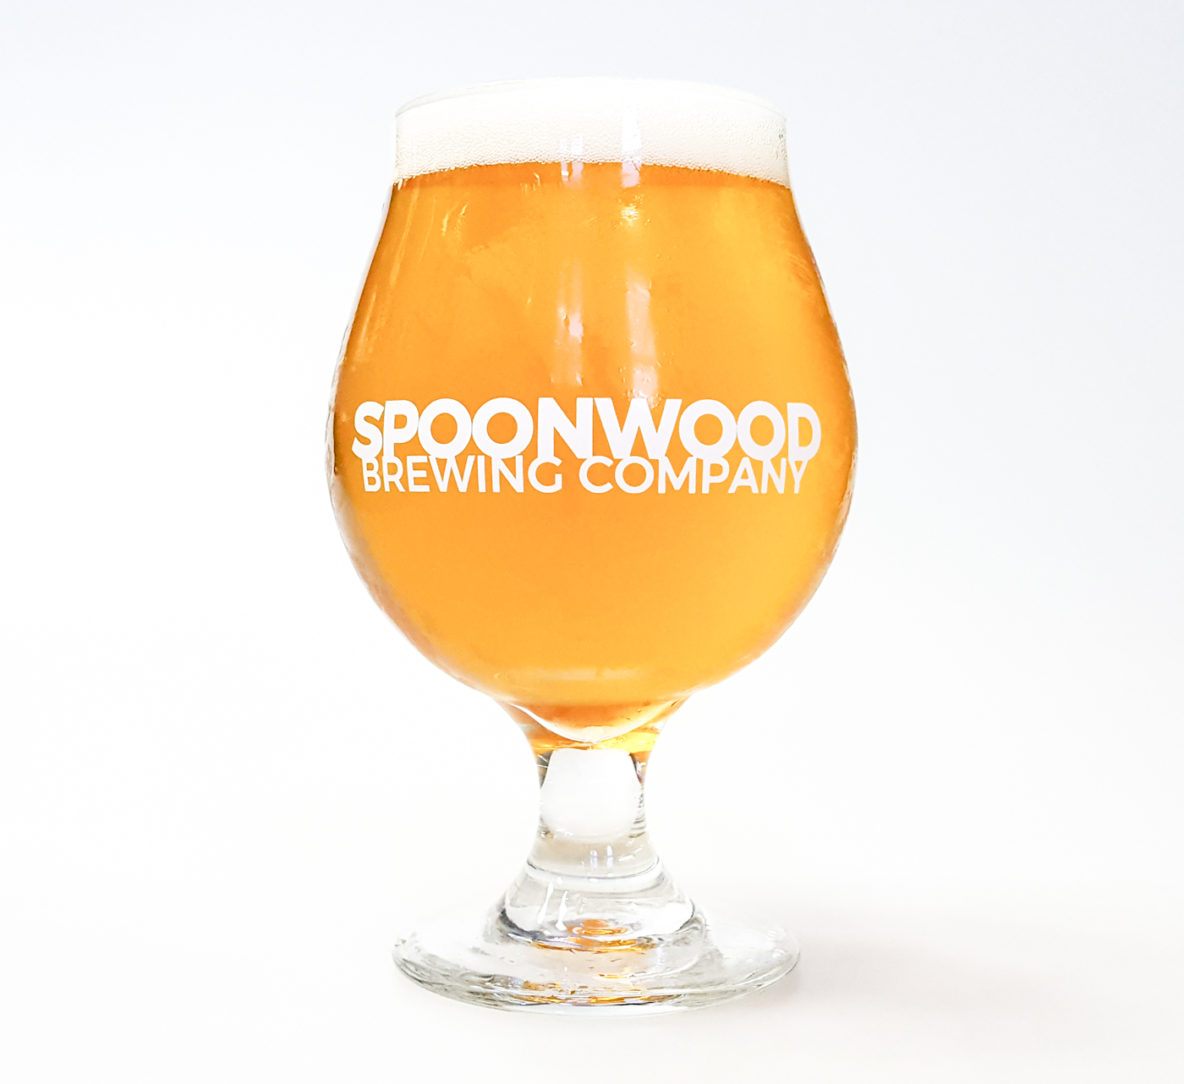 Blithe from SPoonwood Brewing